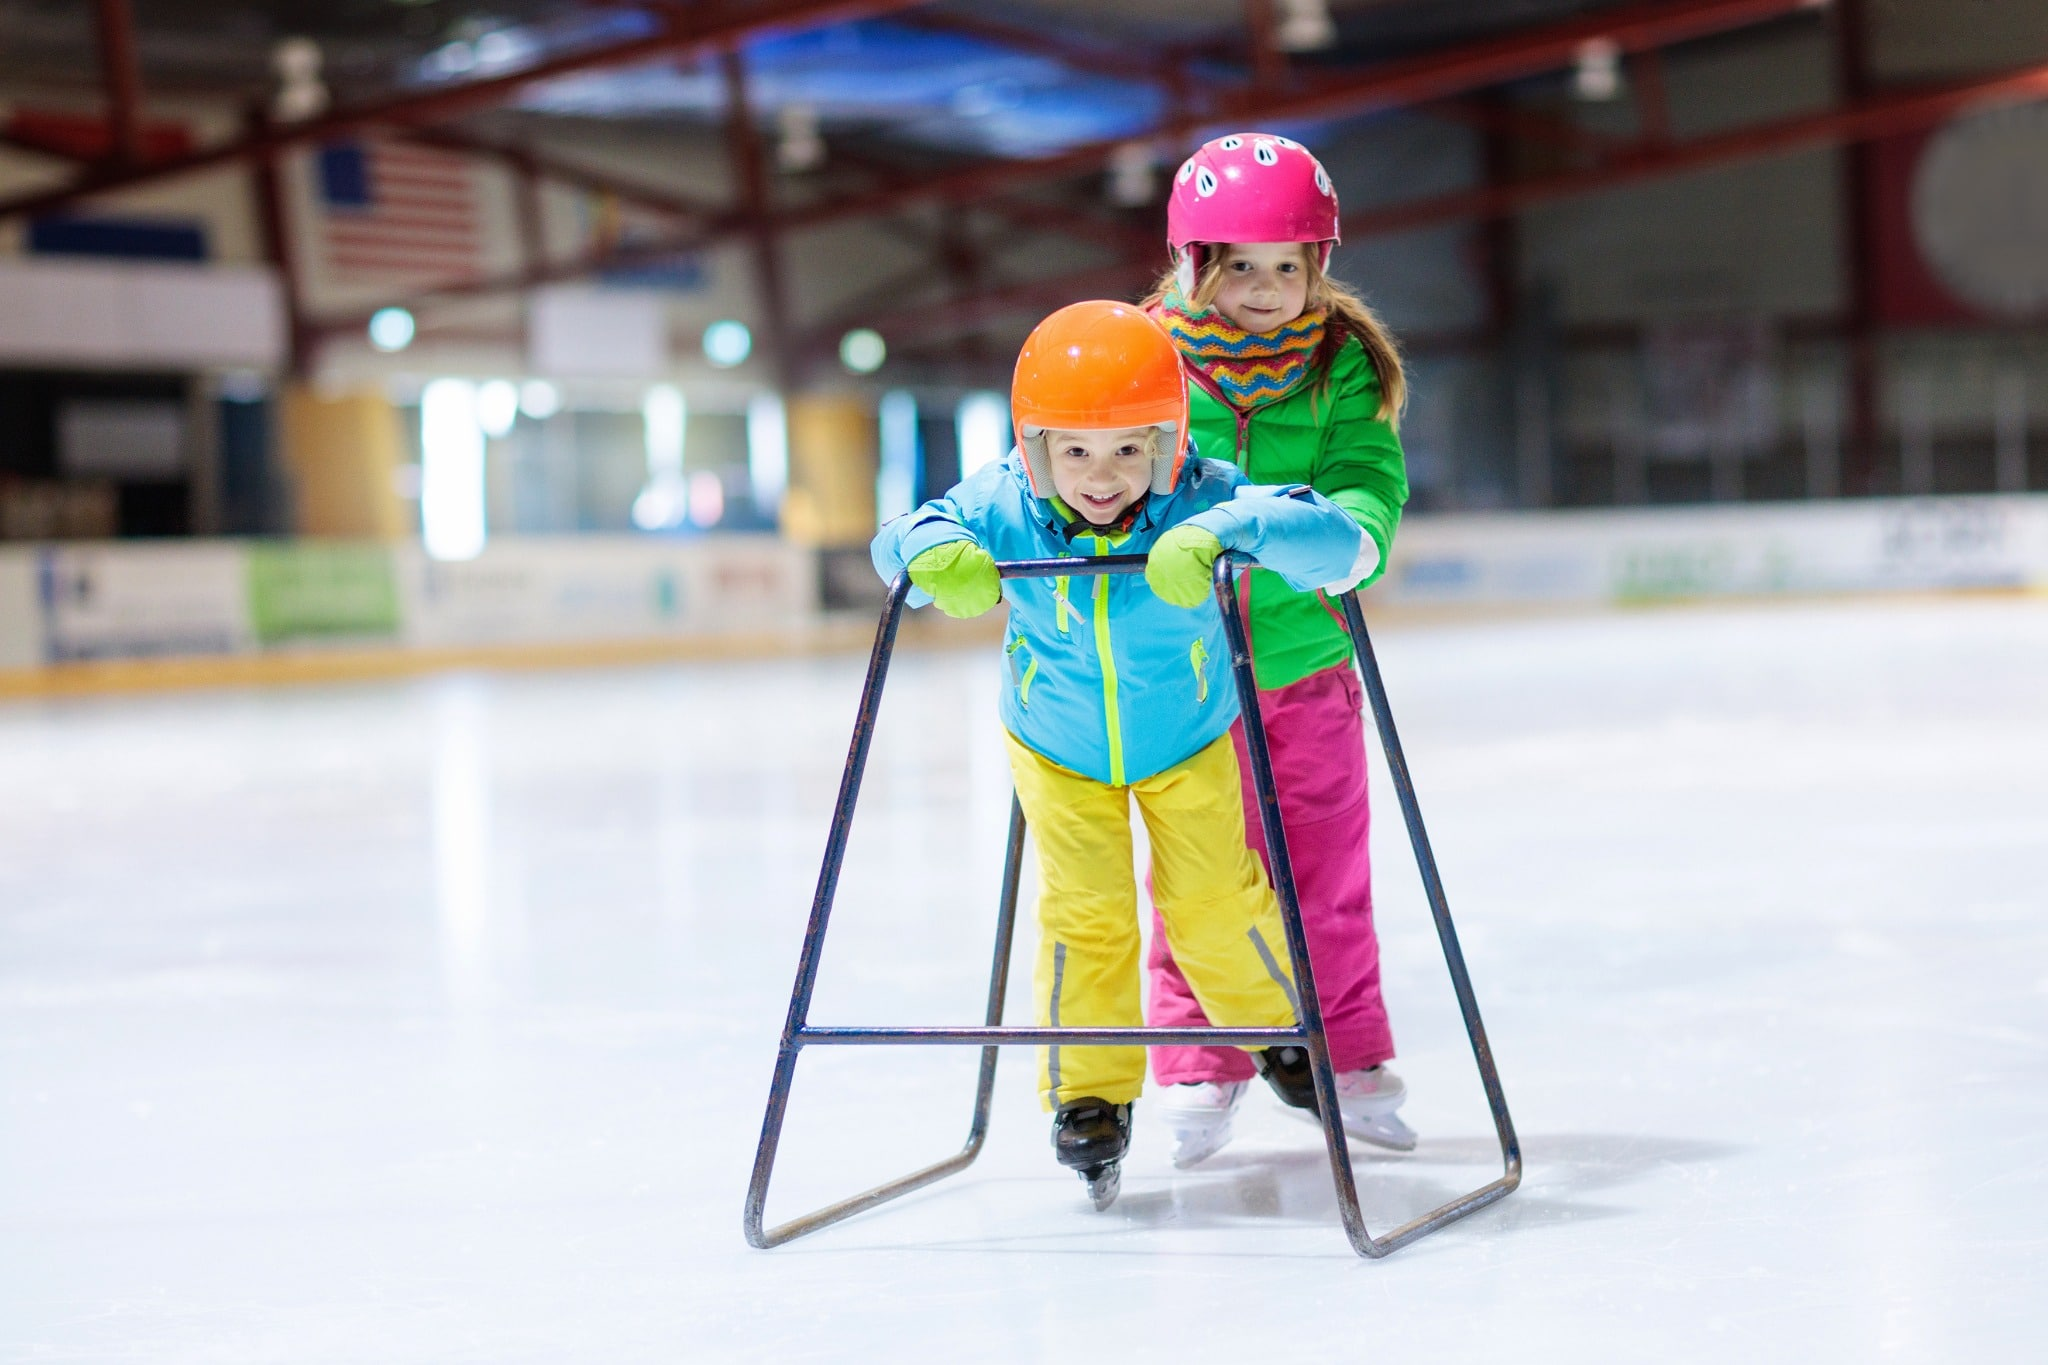 Two kids using a tool to help them learn how to ice skate on artificial ice